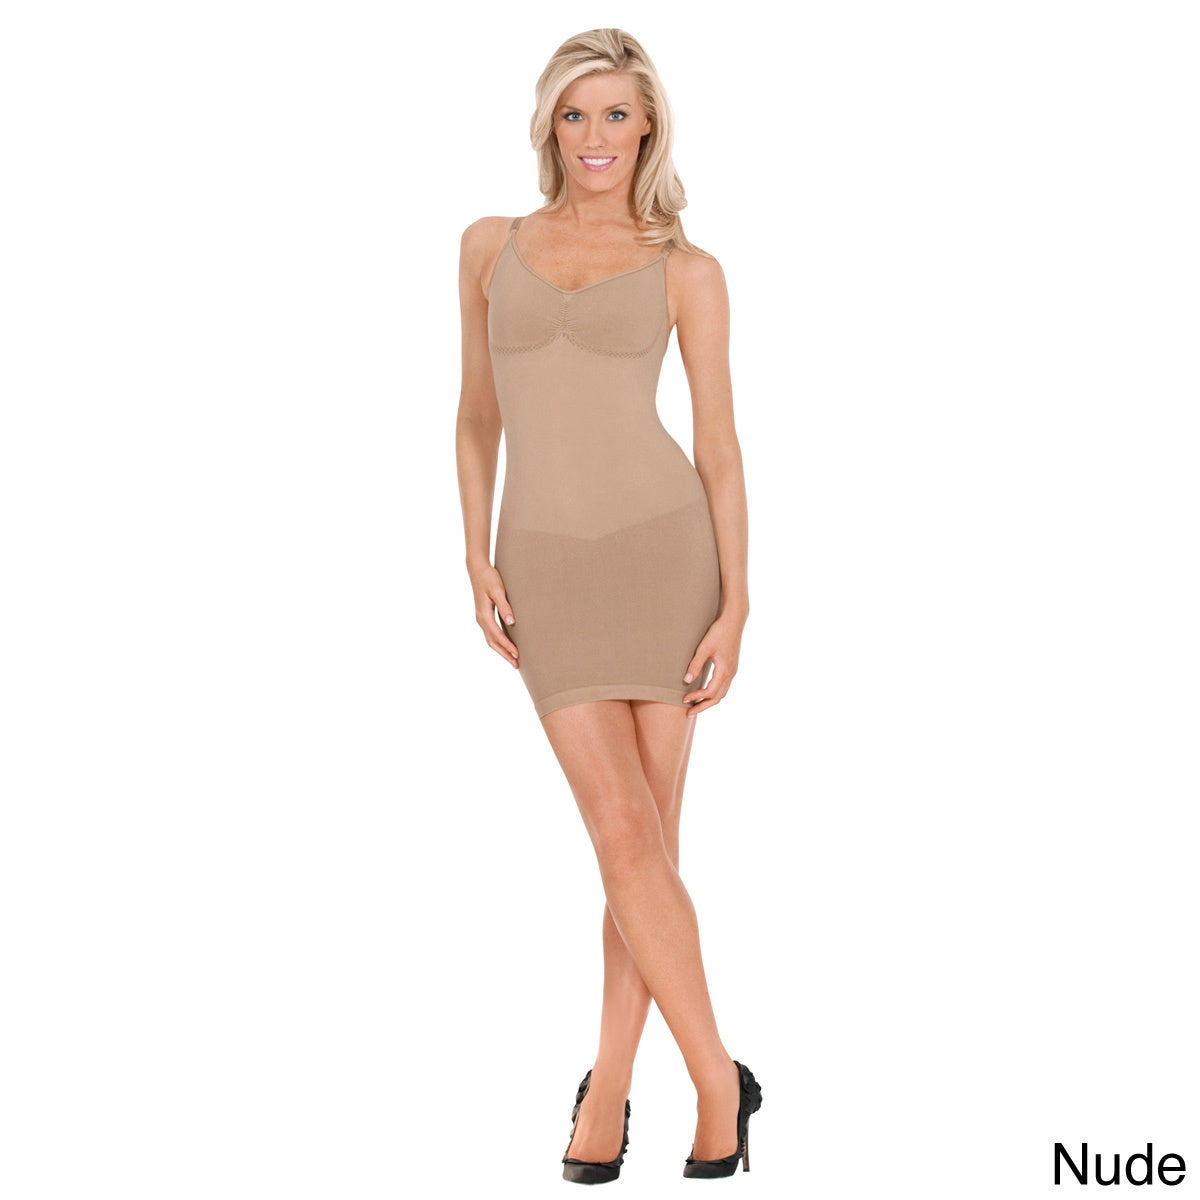 e4a8c4ac4a Shop Julie France by Euroskins Body Shapers Leger Ultra Firm Control Camisole  Dress Shaper - Free Shipping On Orders Over  45 - Overstock - 8631691